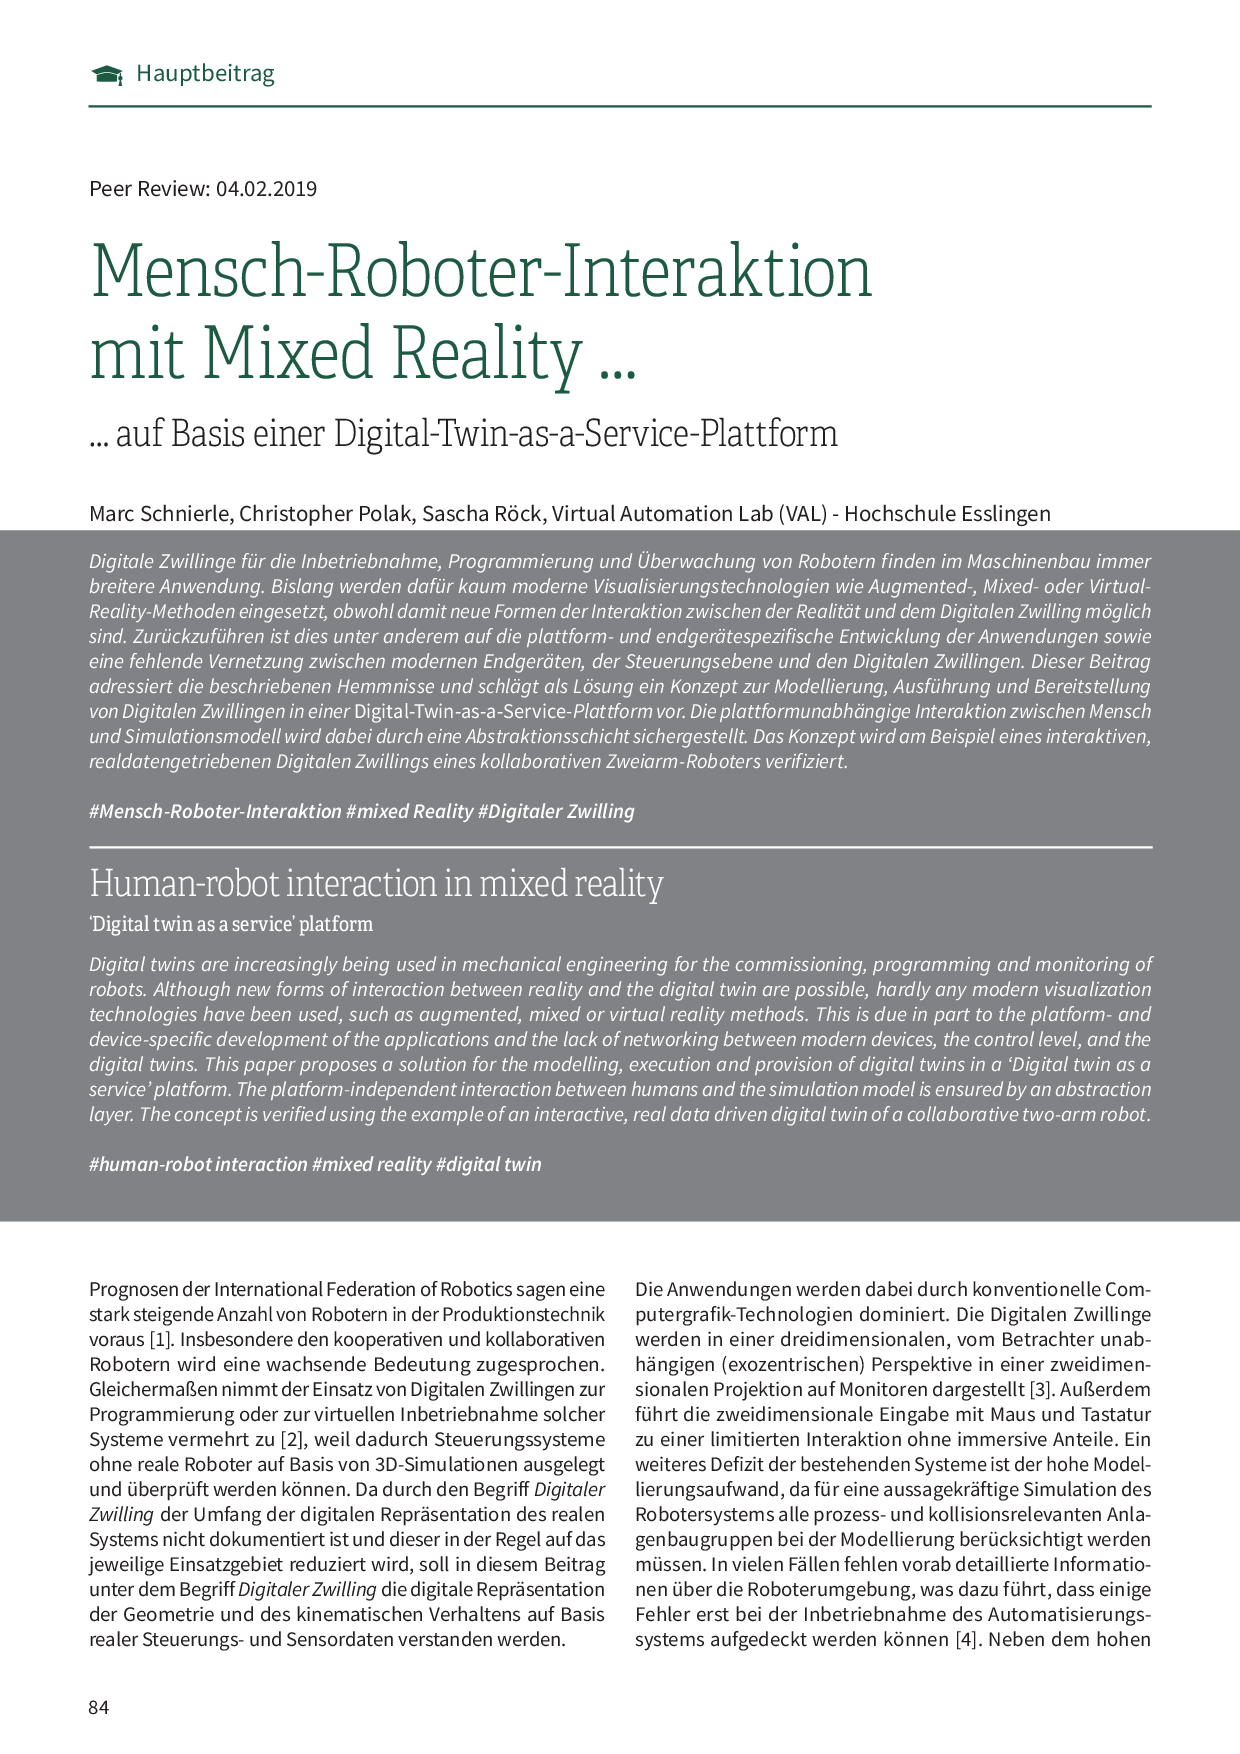 Mensch-Roboter-Interaktion mit Mixed Reality …